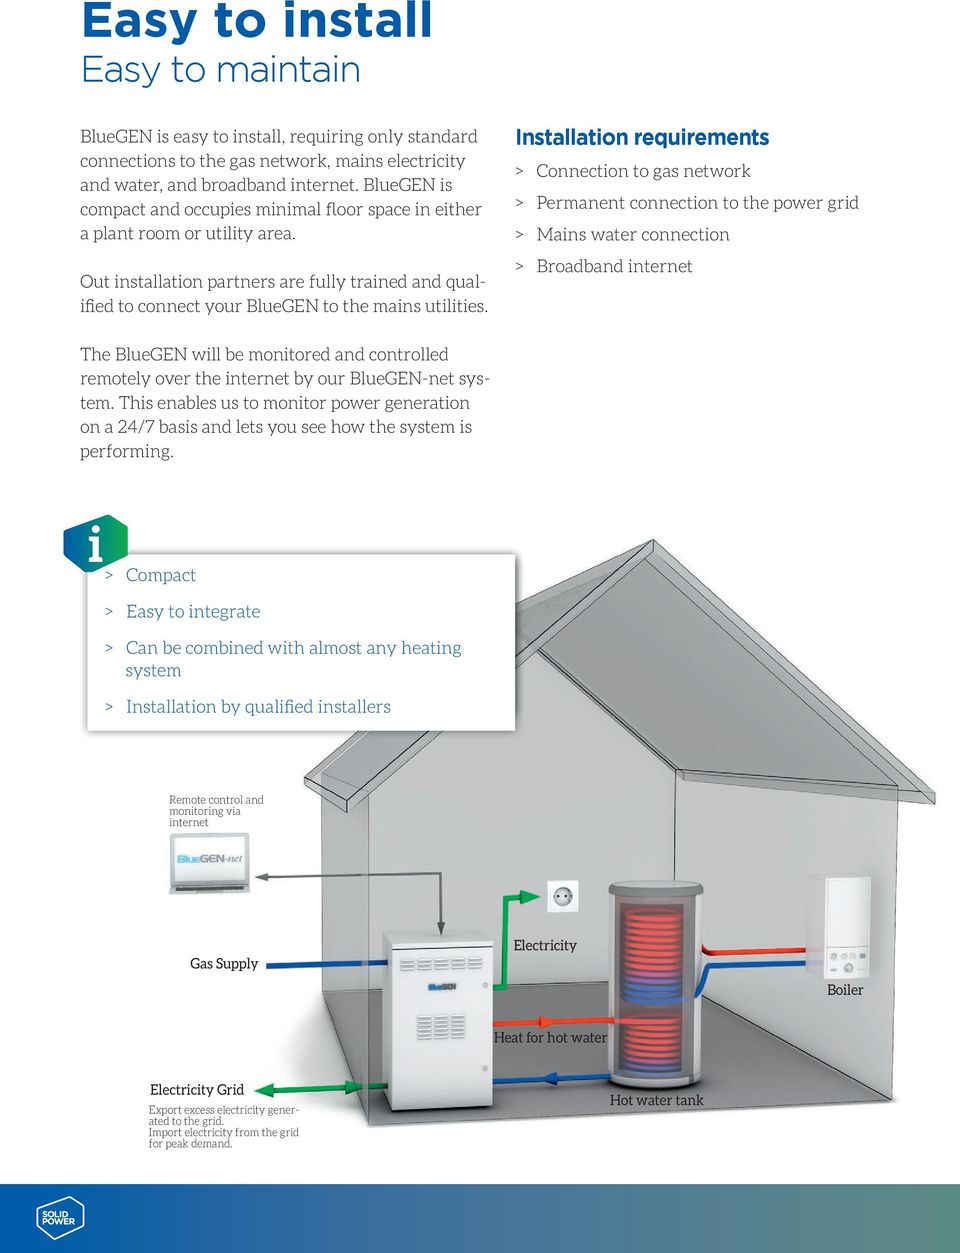 Installation requirements > Connection to gas network > Permanent connection to the power grid > Mains water connection > Broadband internet The BlueGEN will be monitored and controlled remotely over